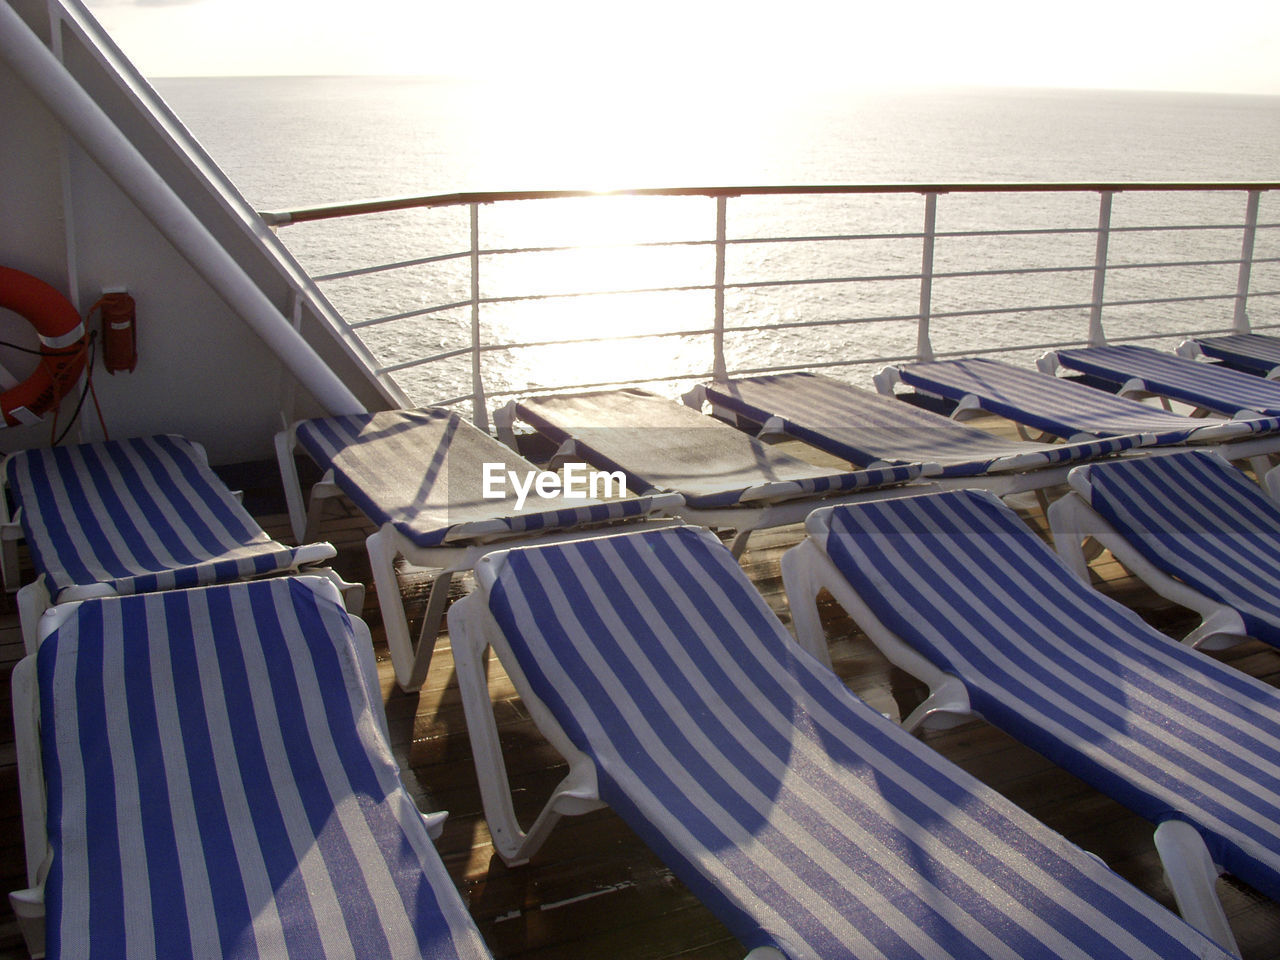 Lounge chairs on boat deck in sea